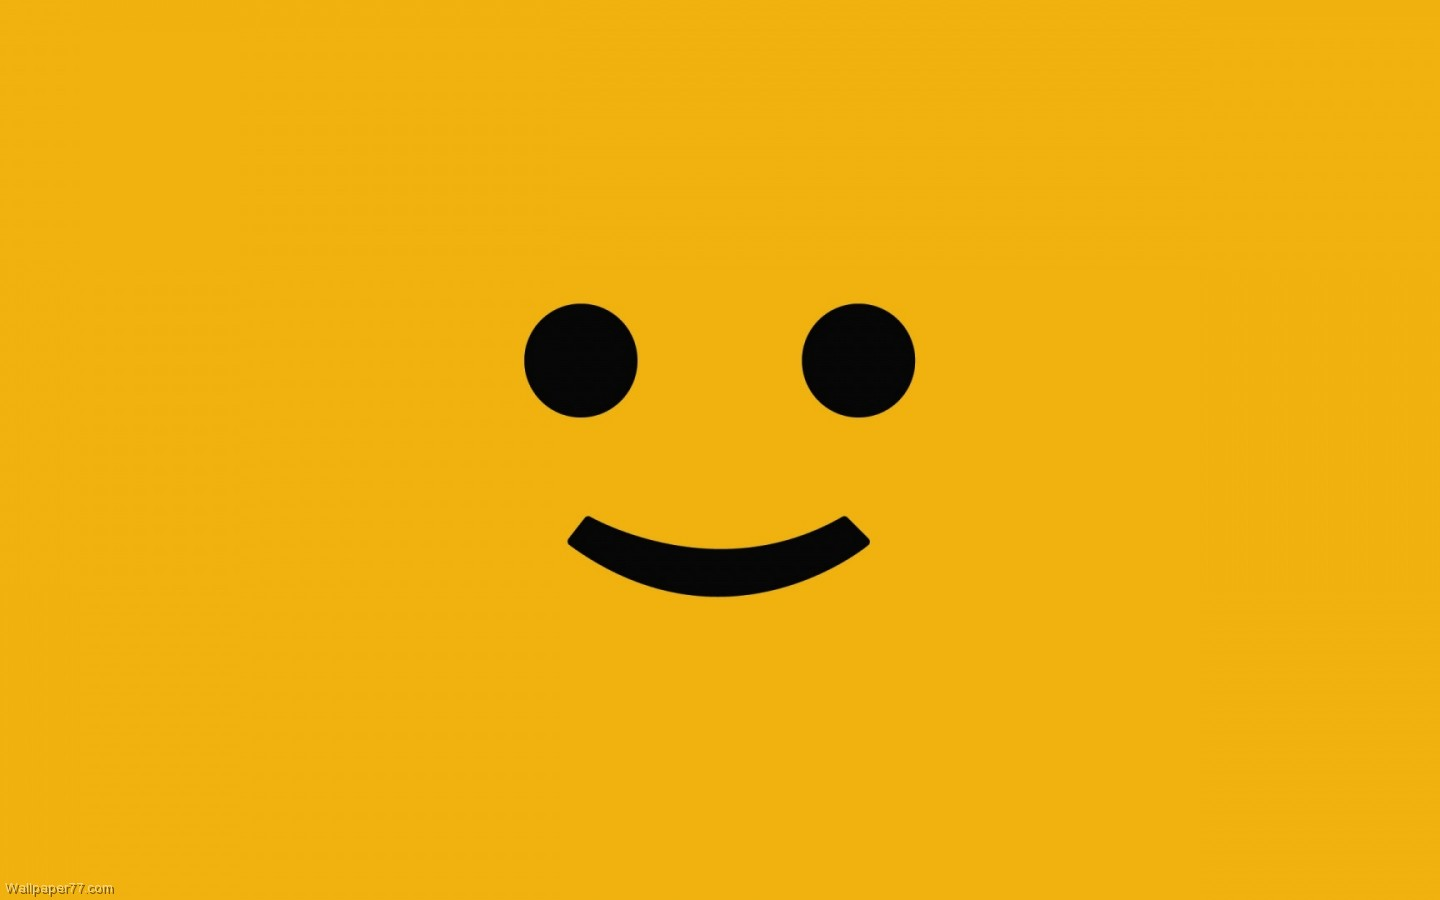 Epic Smiley Wallpapers - Wallpaper Cave |Funny Smiley Faces Wallpaper